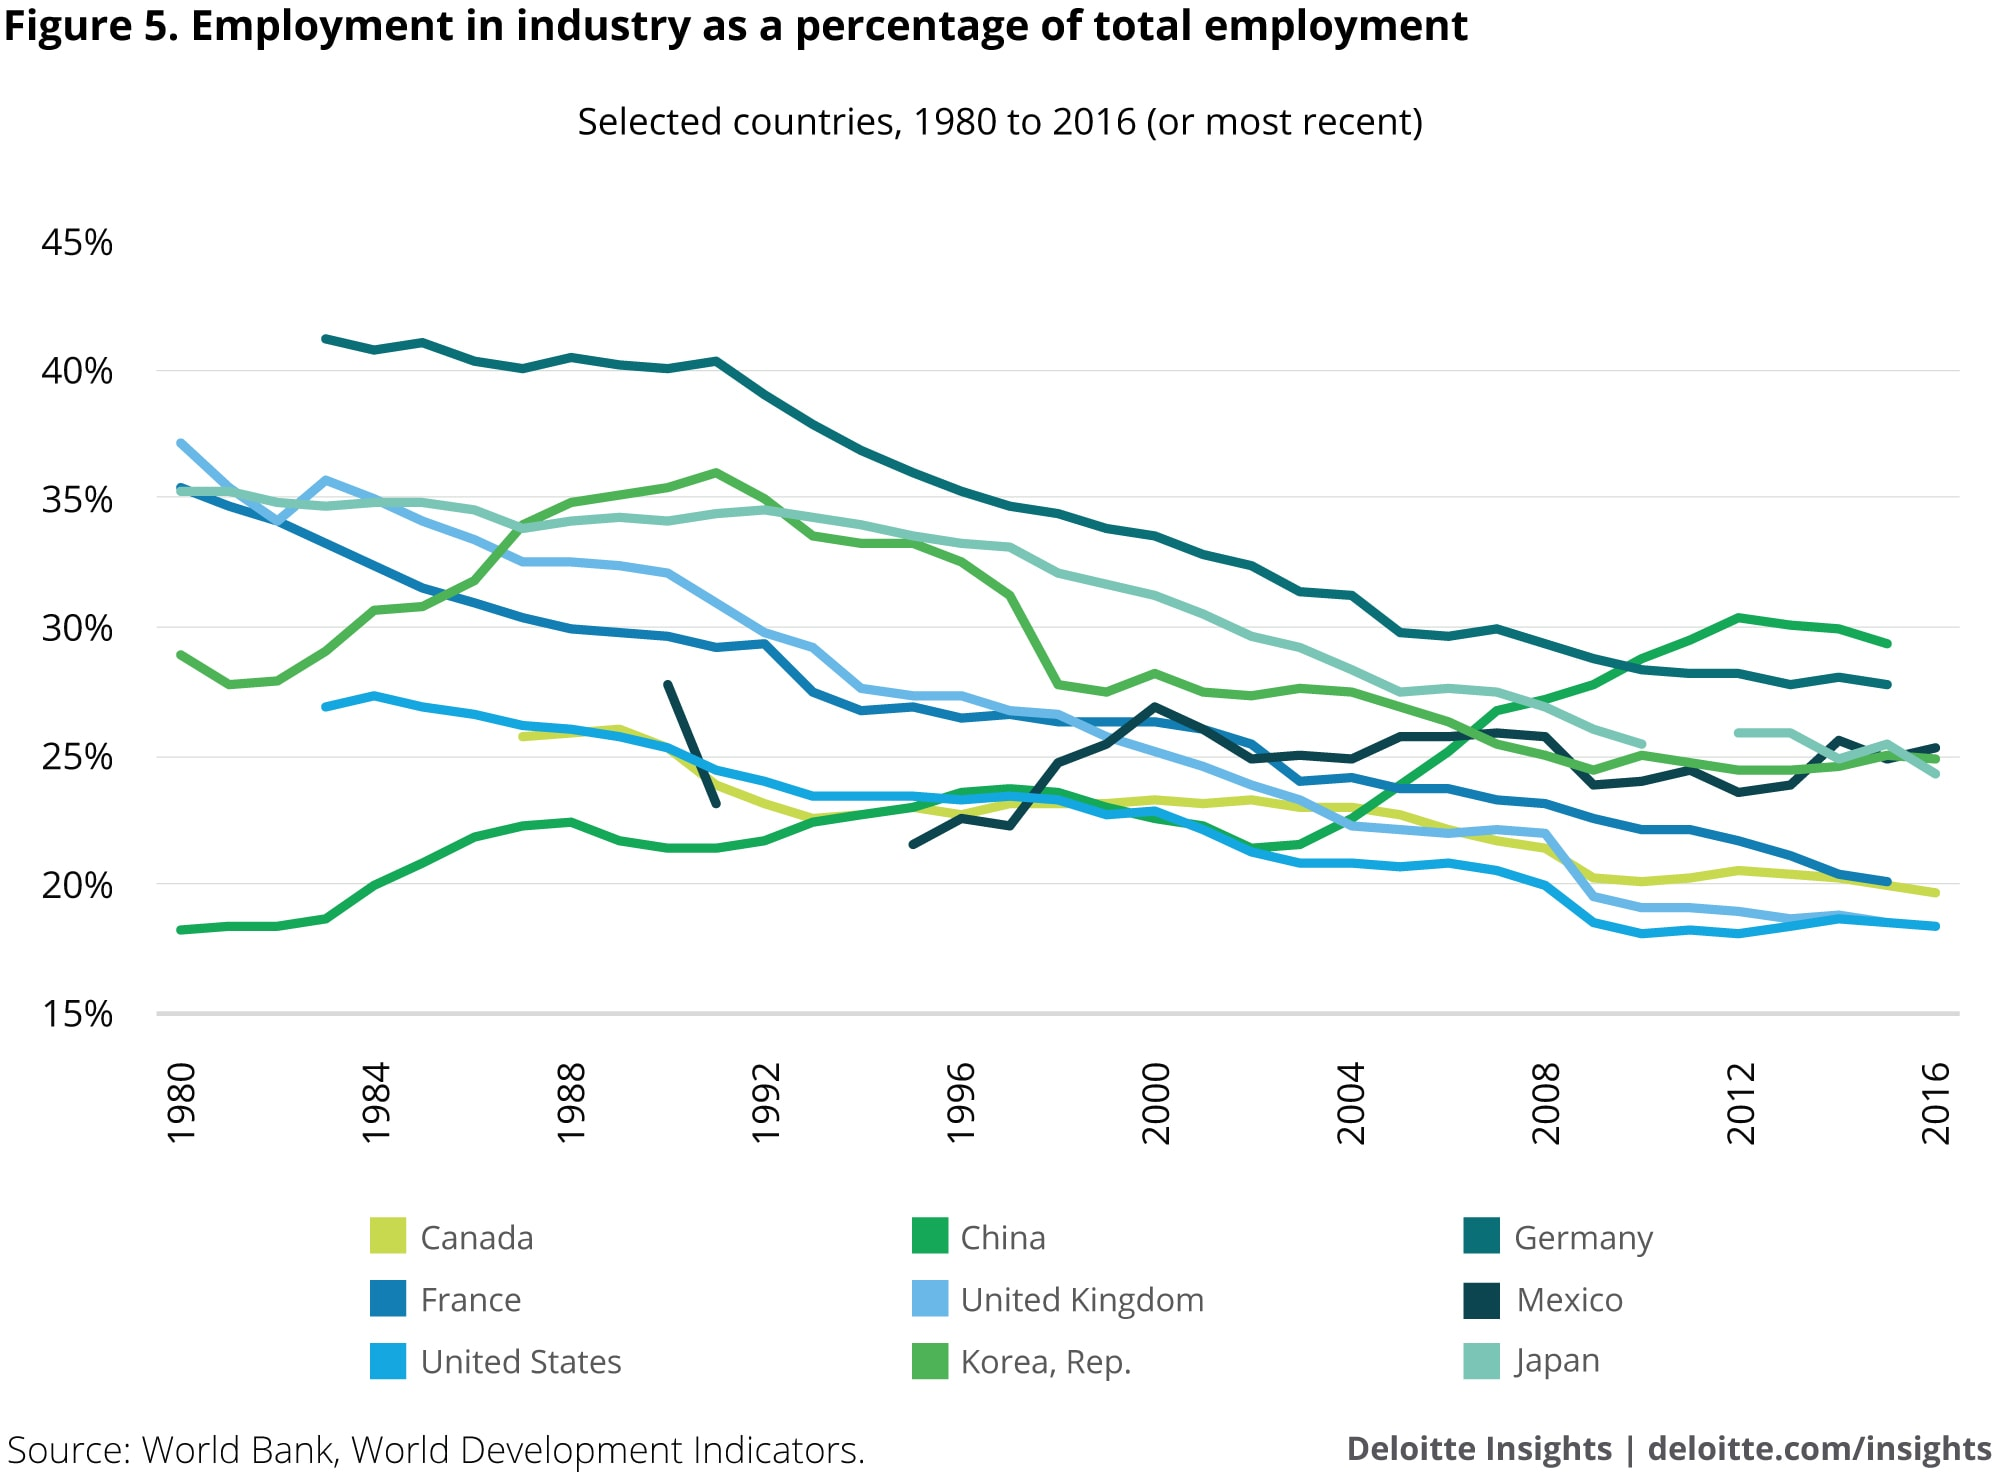 Employment in industry as a percentage of total employment